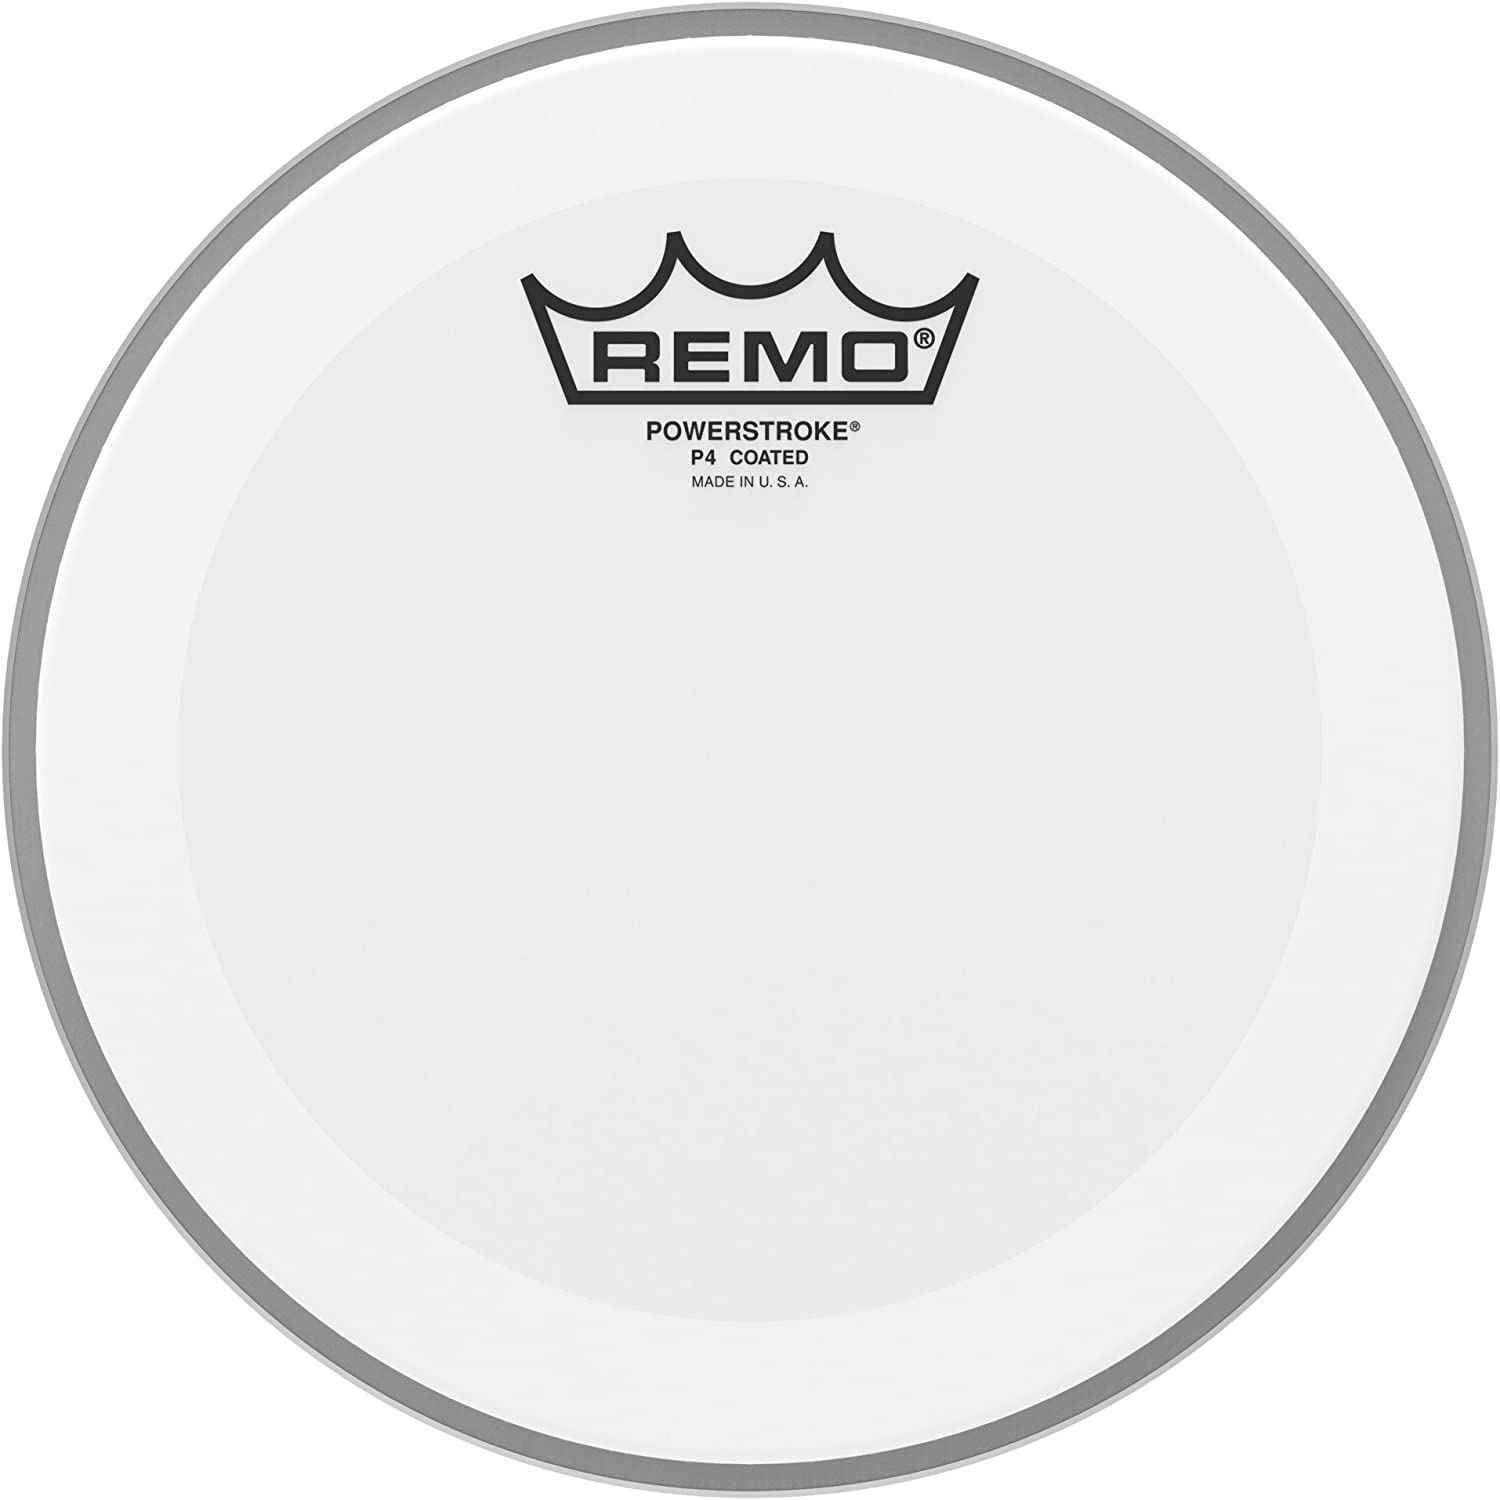 "Remo Powerstroke P4 Coated Drumhead, 8"" 71bt1vPg5kL"